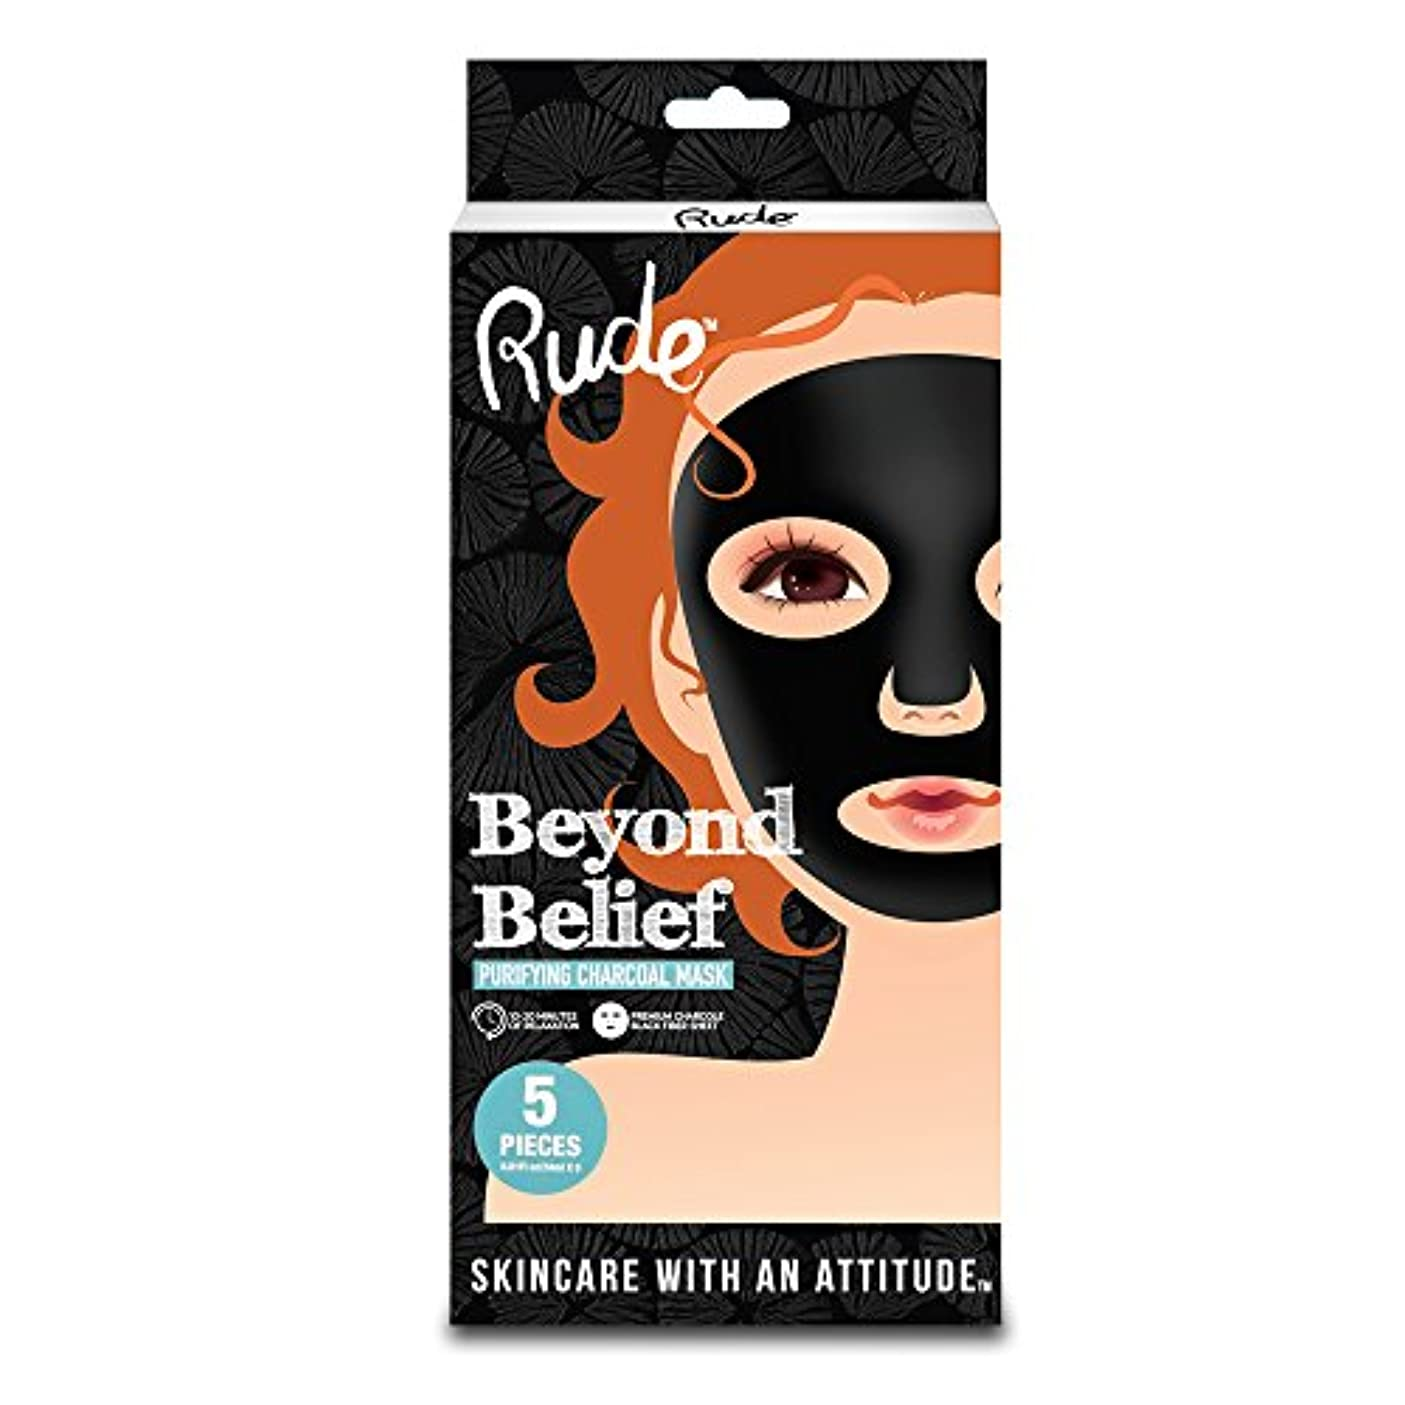 シーズン工場モトリーRUDE Beyond Belief Purifying Charcoal Mask 5 Piece Pack (並行輸入品)